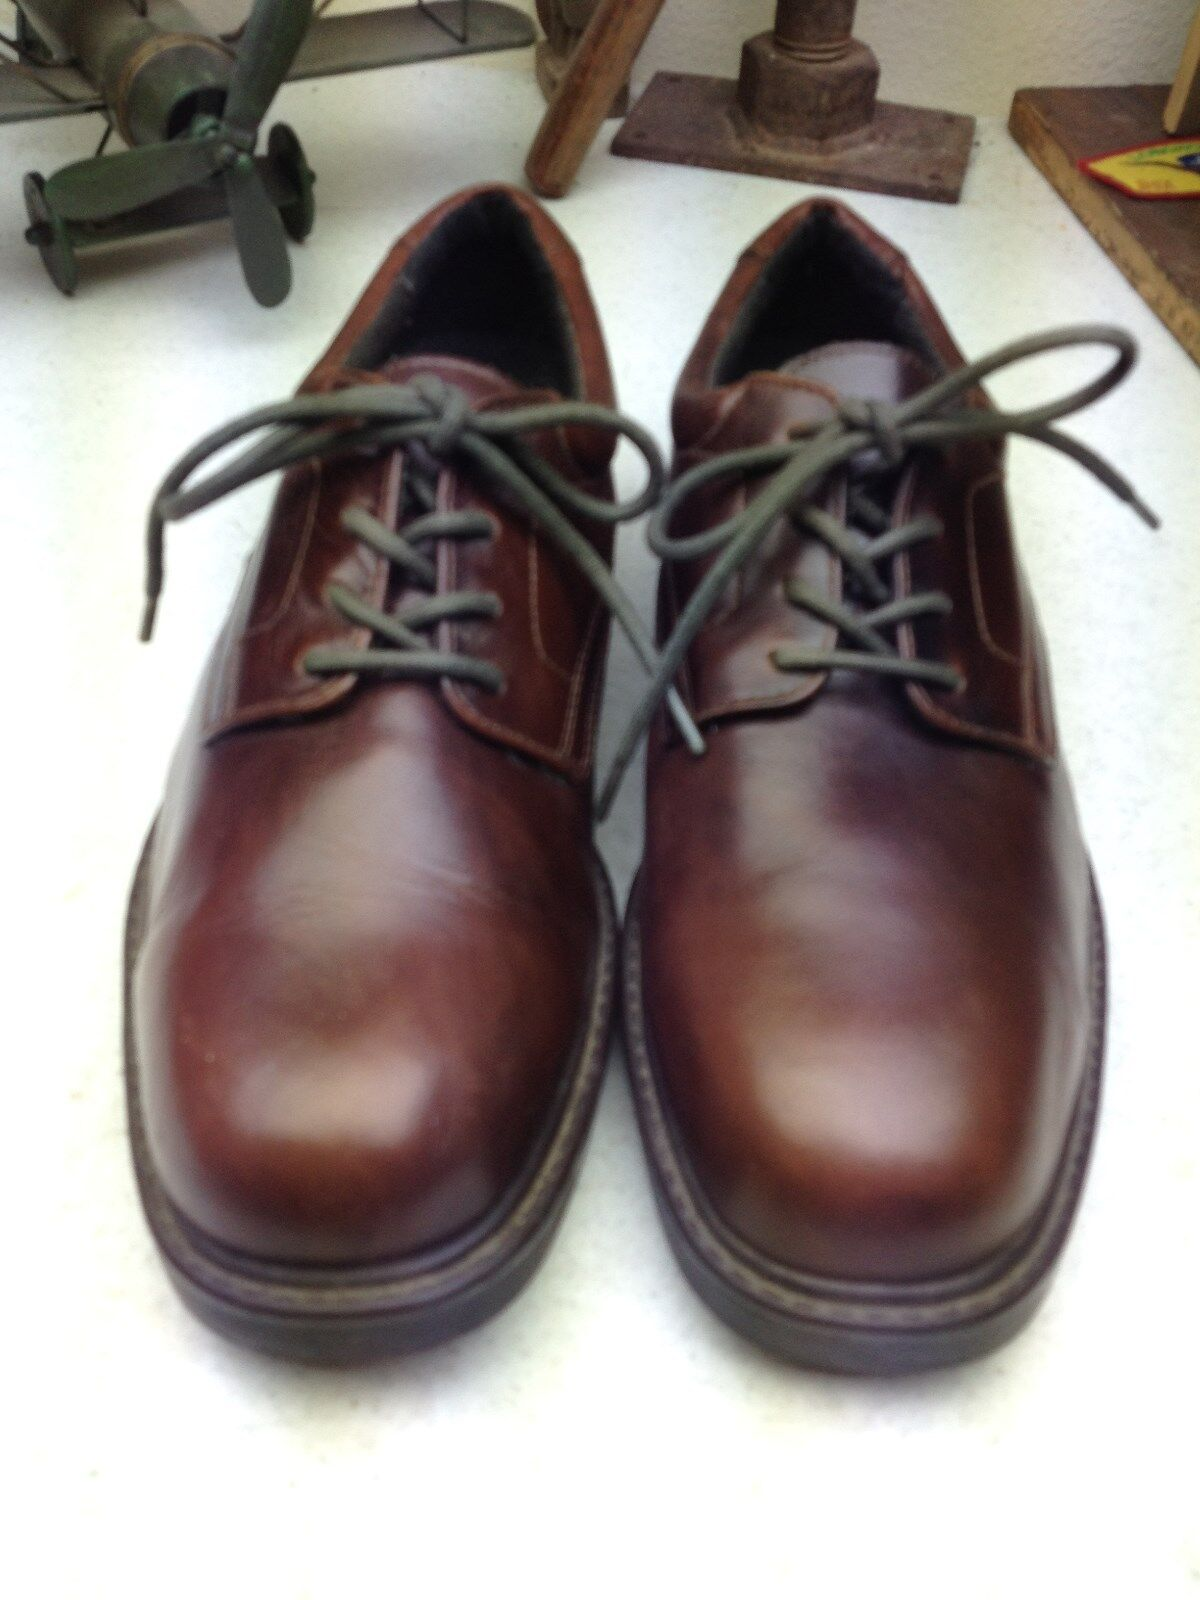 DEER STAGS BOULDER BROWN LEATHER LACE UP OXFORD OXFORD OXFORD POWER DRIVING Scarpe SIZE 11 M c9cf85